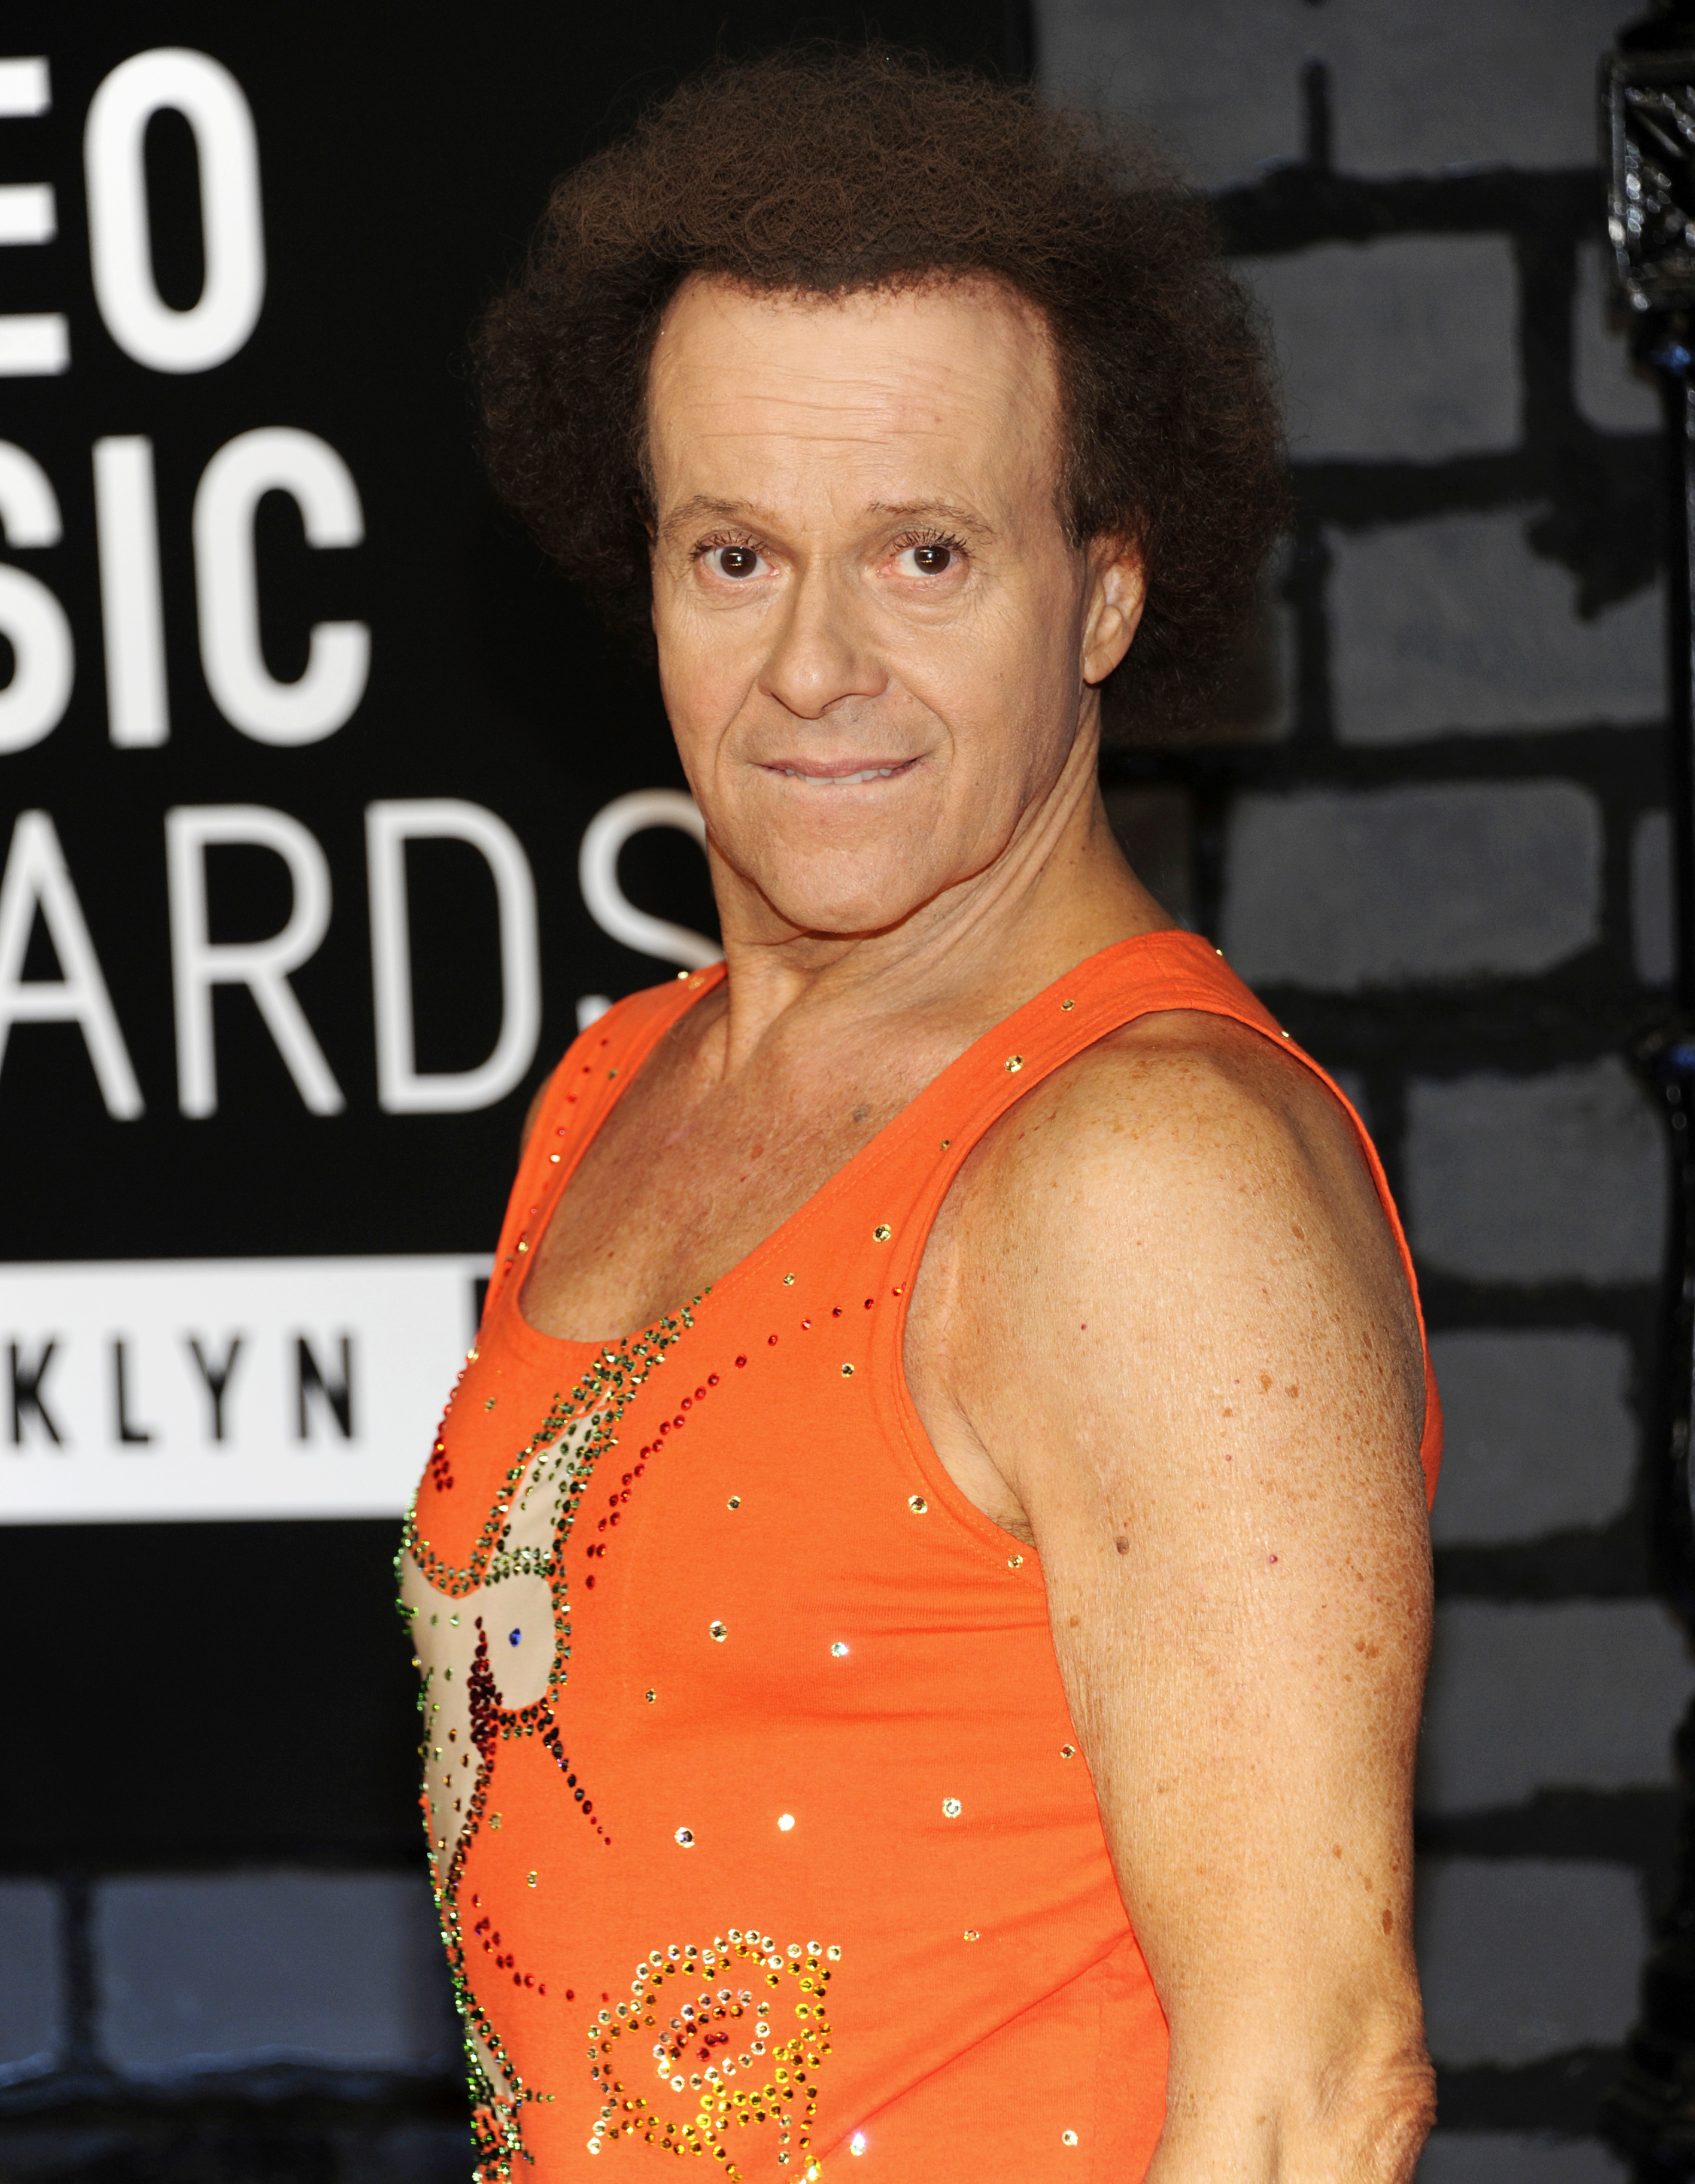 Richard Simmons Sues National Enquirer For Libel The Blade